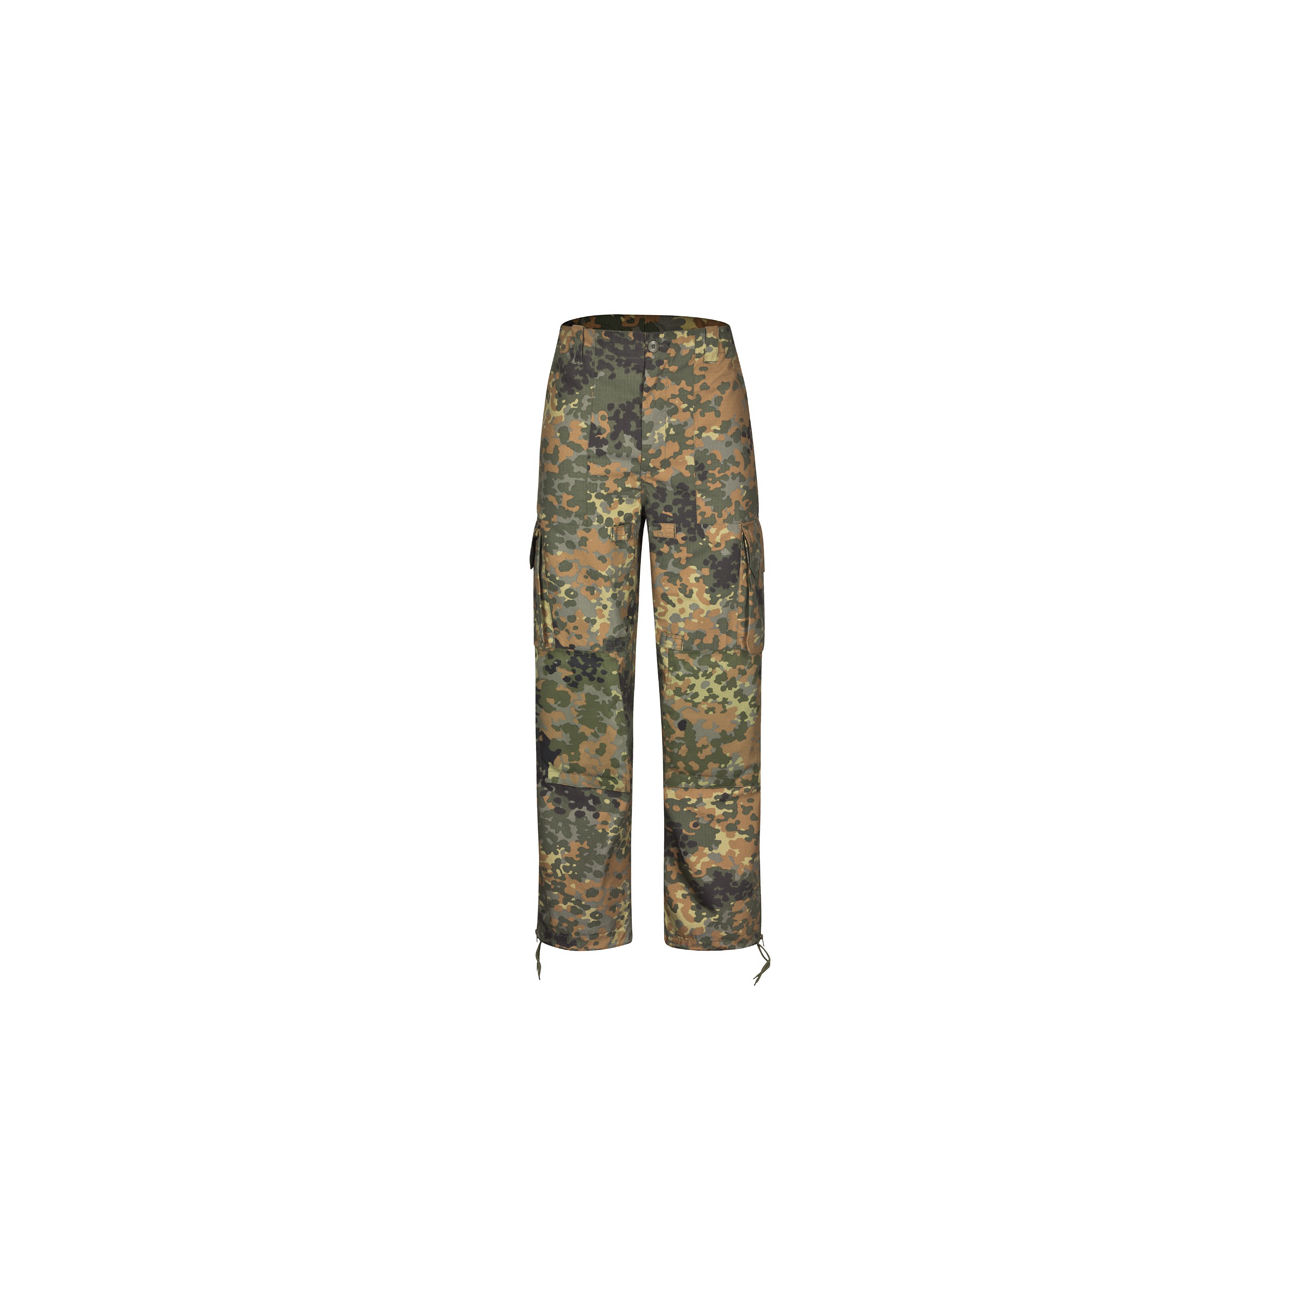 Kommandohose Light Weight Mil-Tec, flecktarn 0